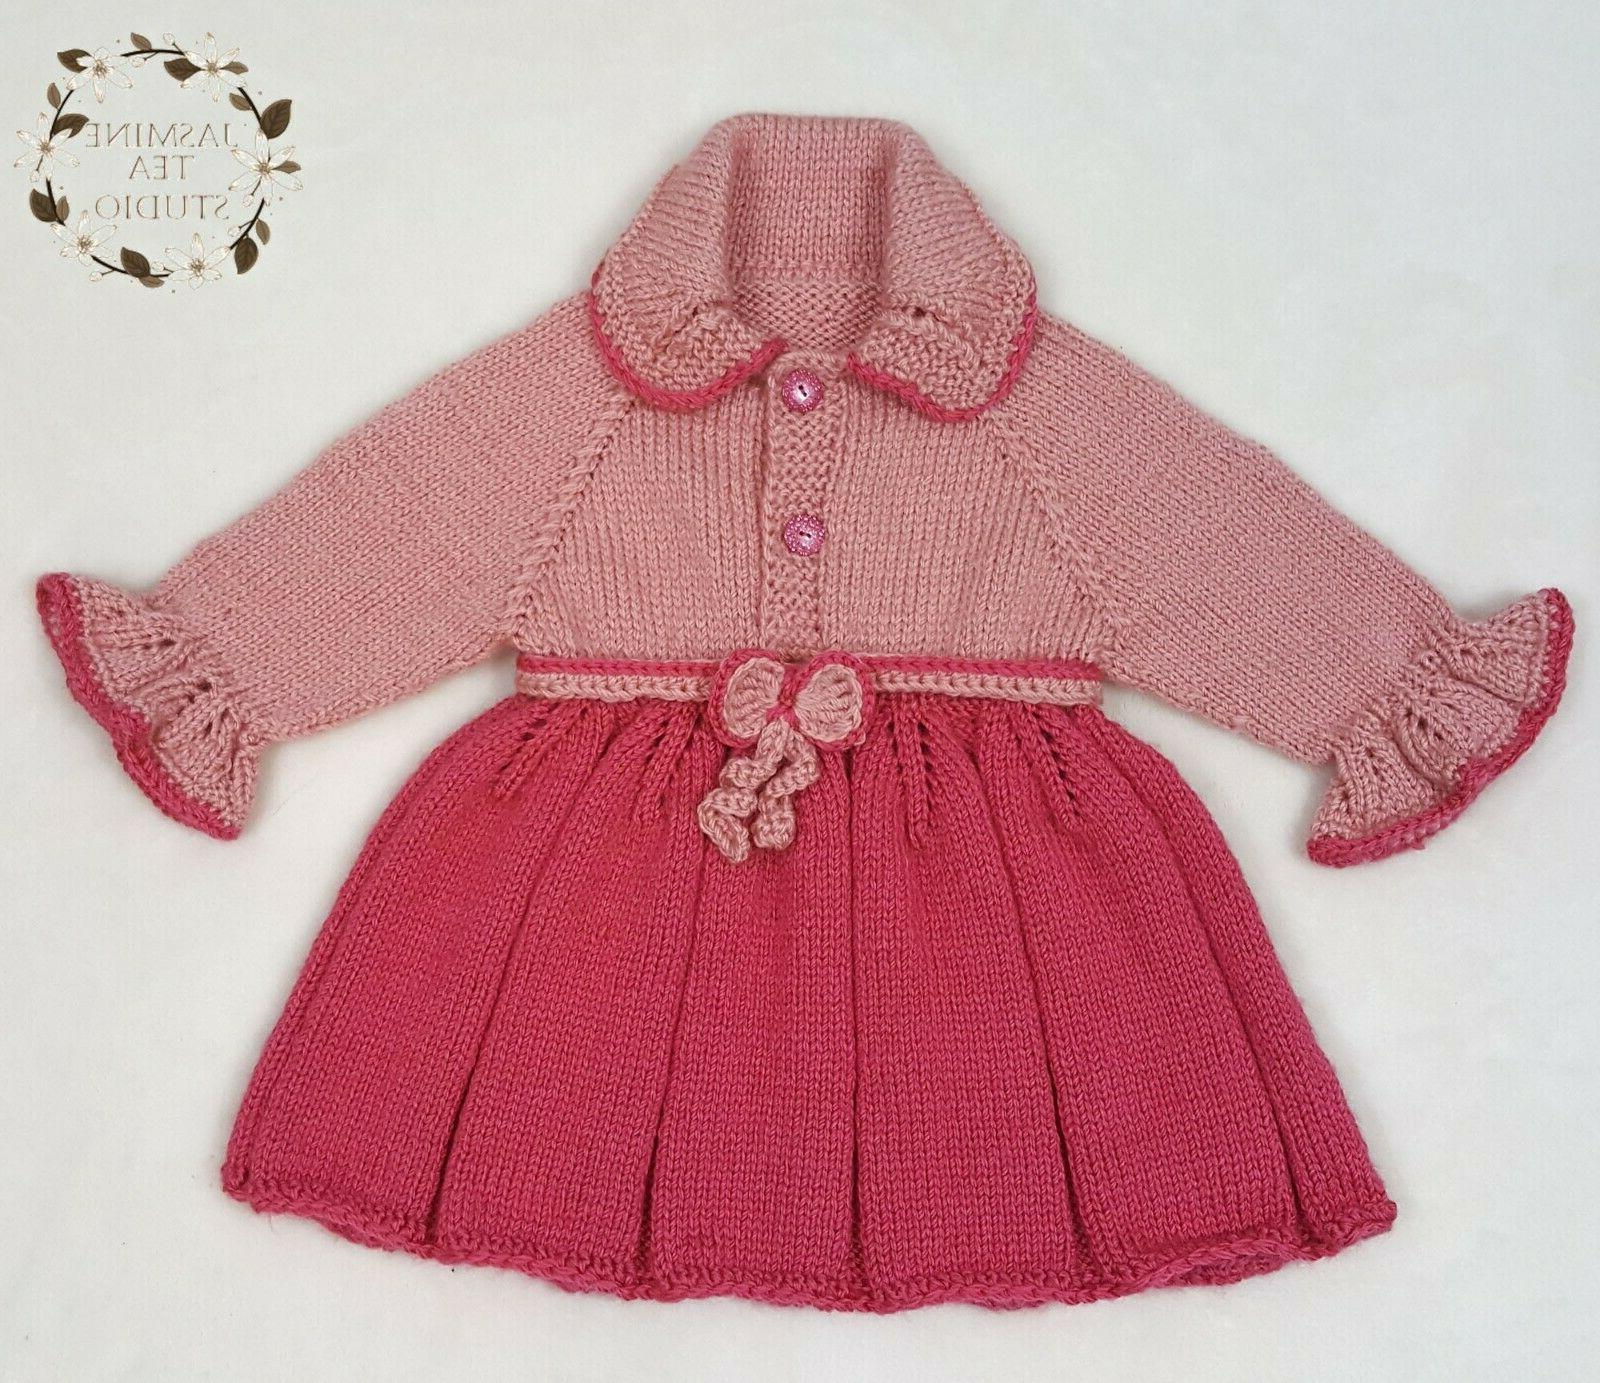 Baby Girl Clothing Outfit Shower Present Handmade